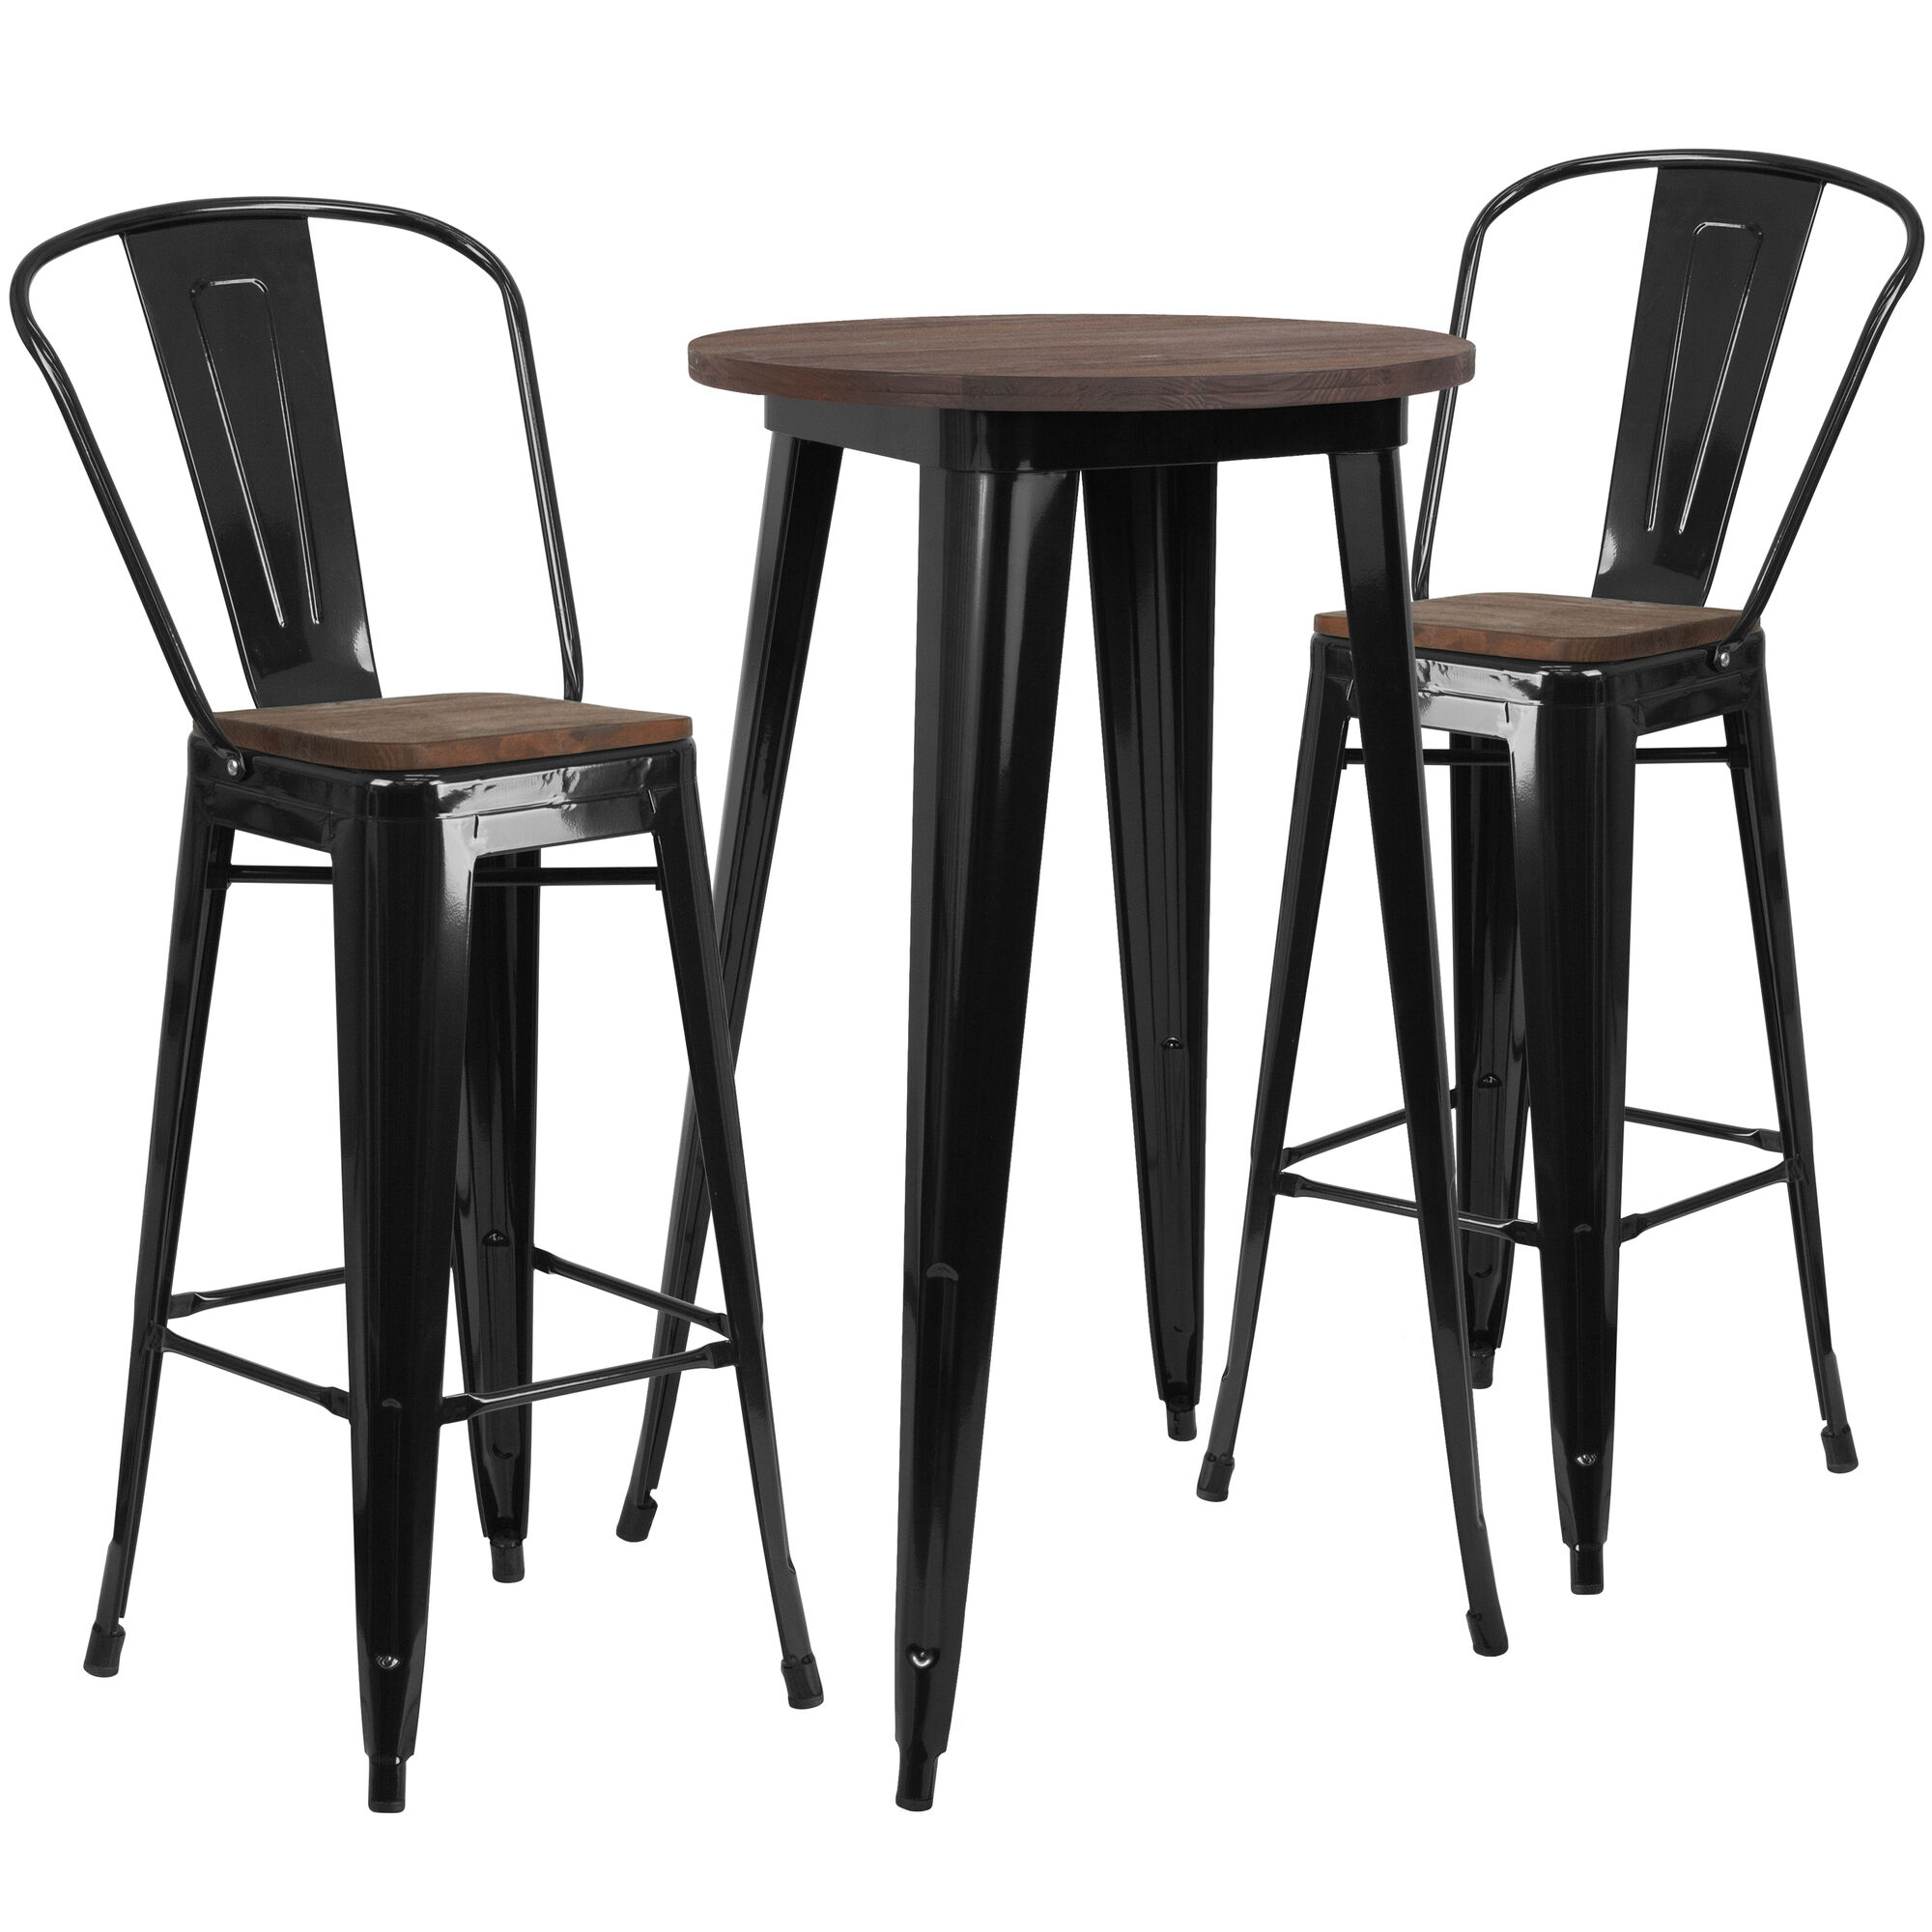 Wondrous 24 Round Black Metal Bar Table Set With Wood Top And 2 Stools Pdpeps Interior Chair Design Pdpepsorg